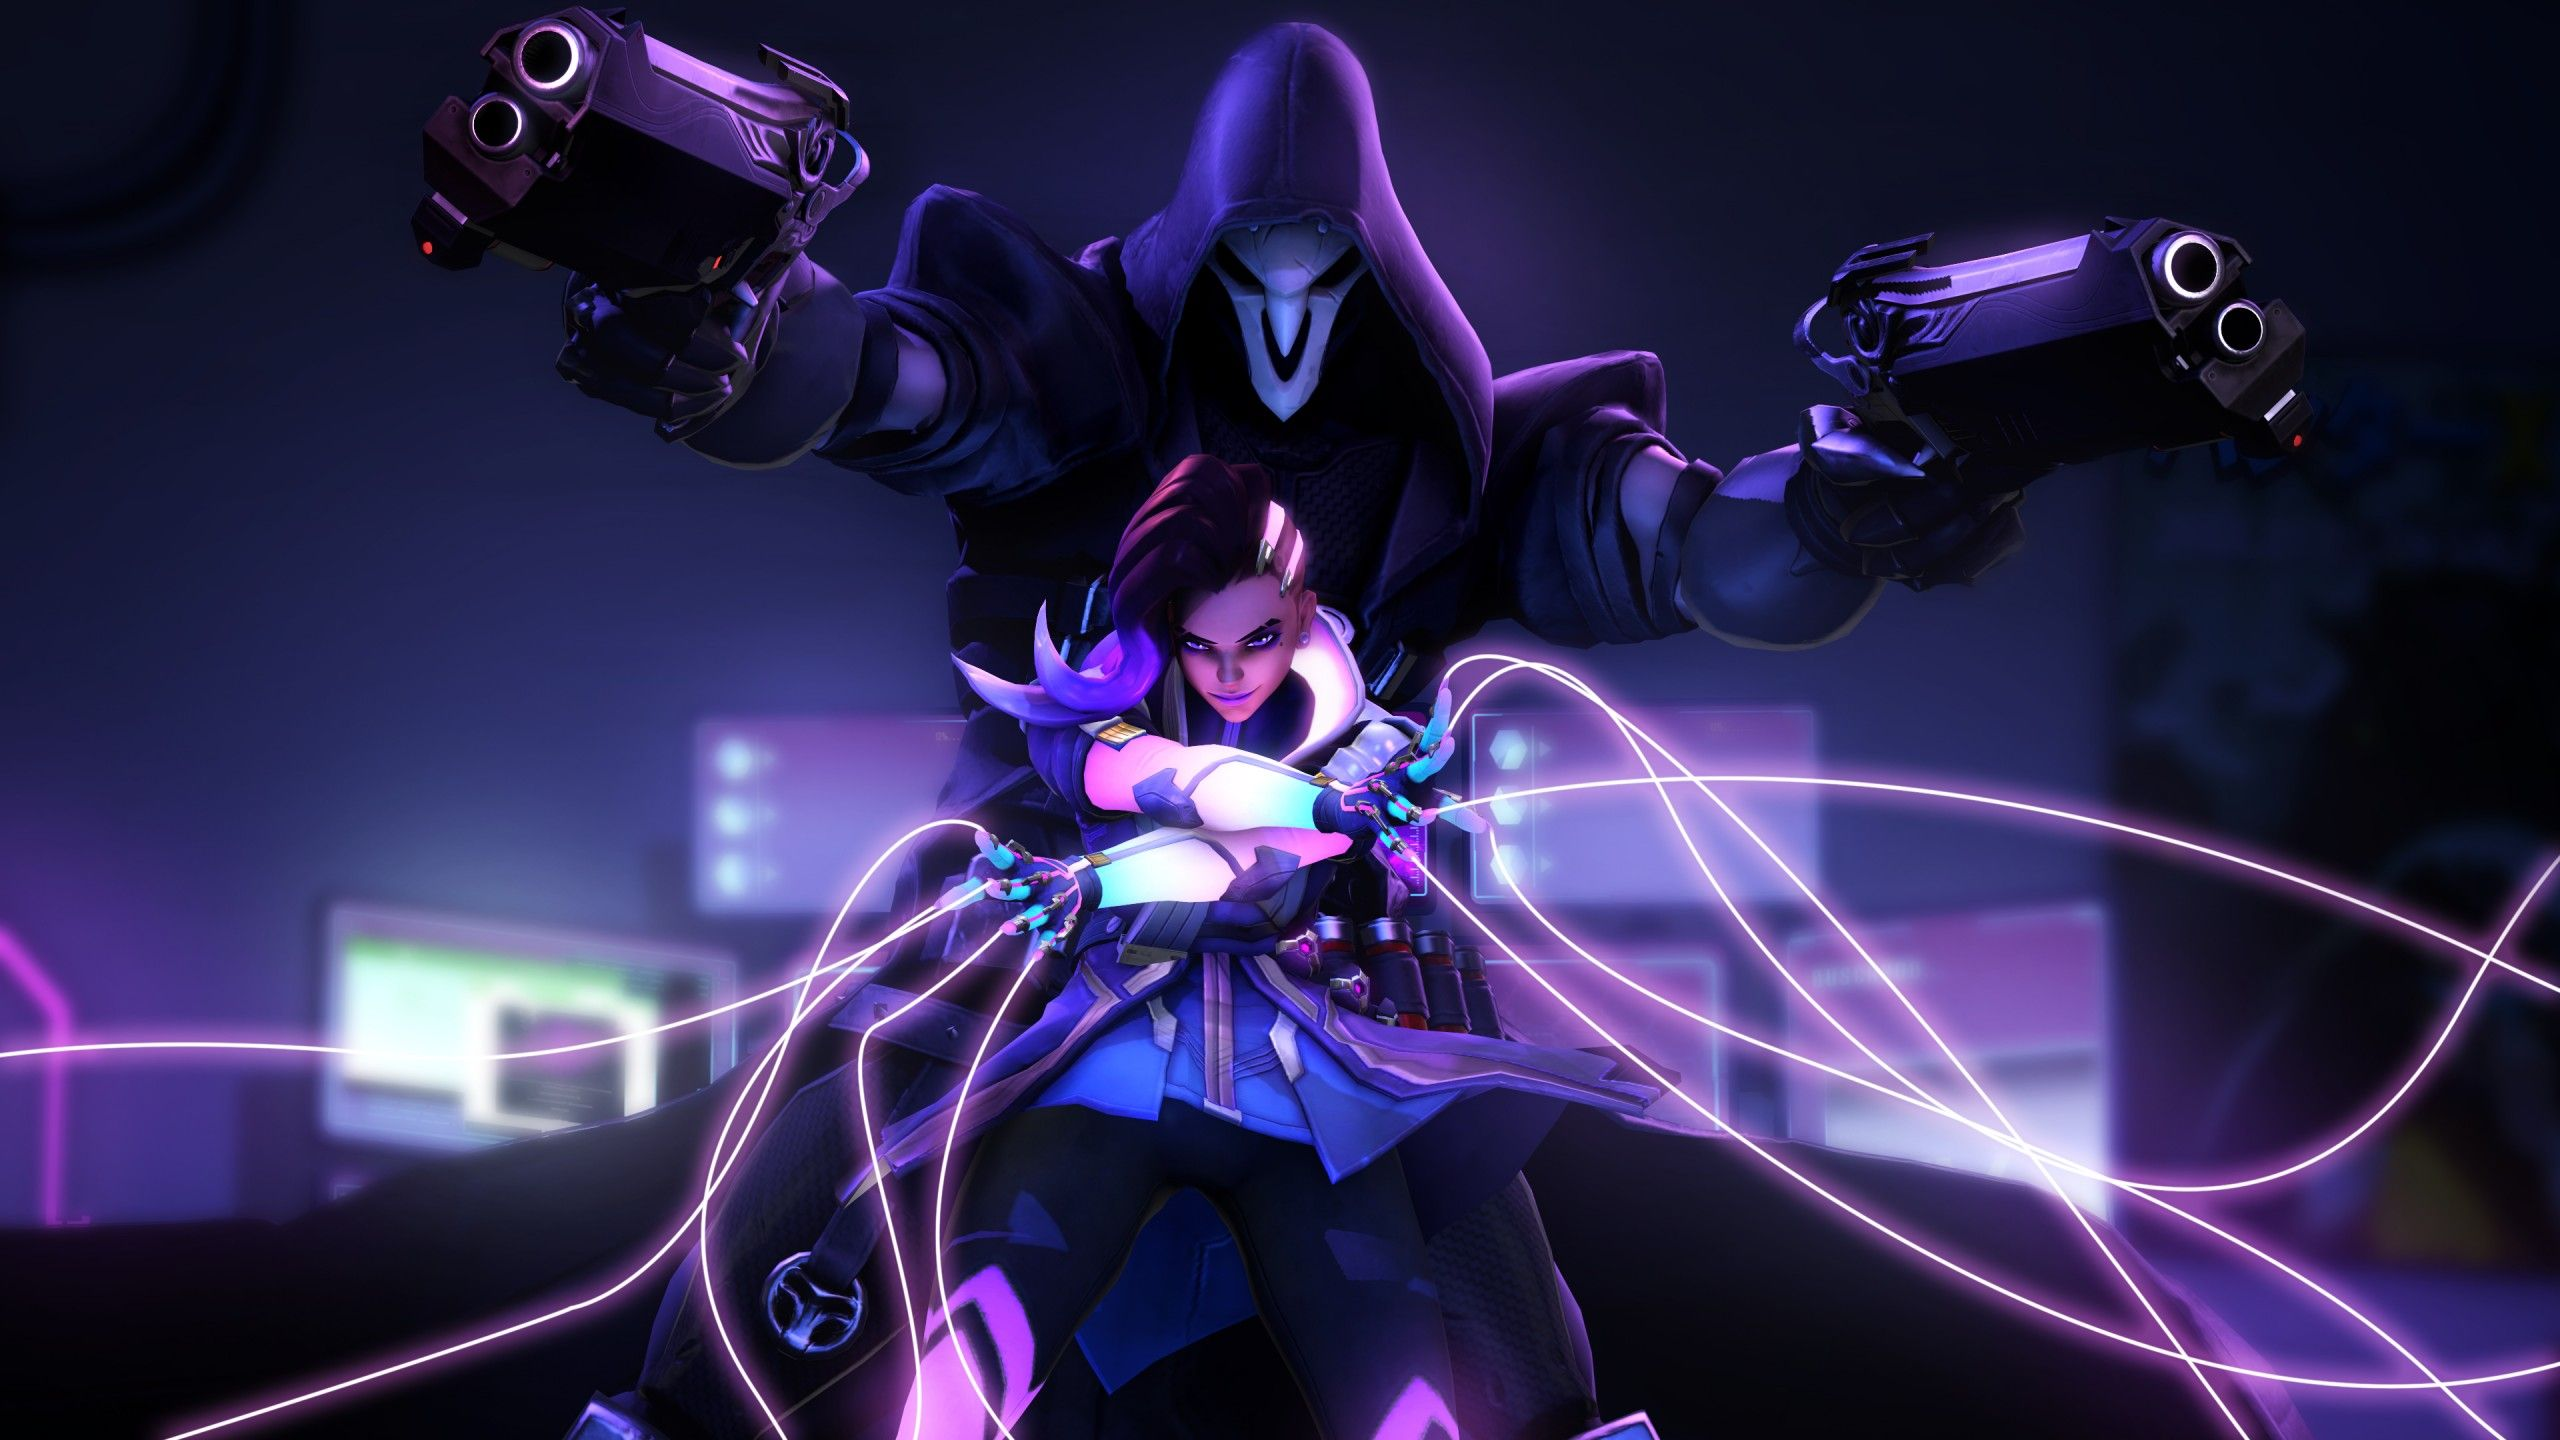 Download Overwatch Sombra Reaper Neon 4k Wallpaper Top Free